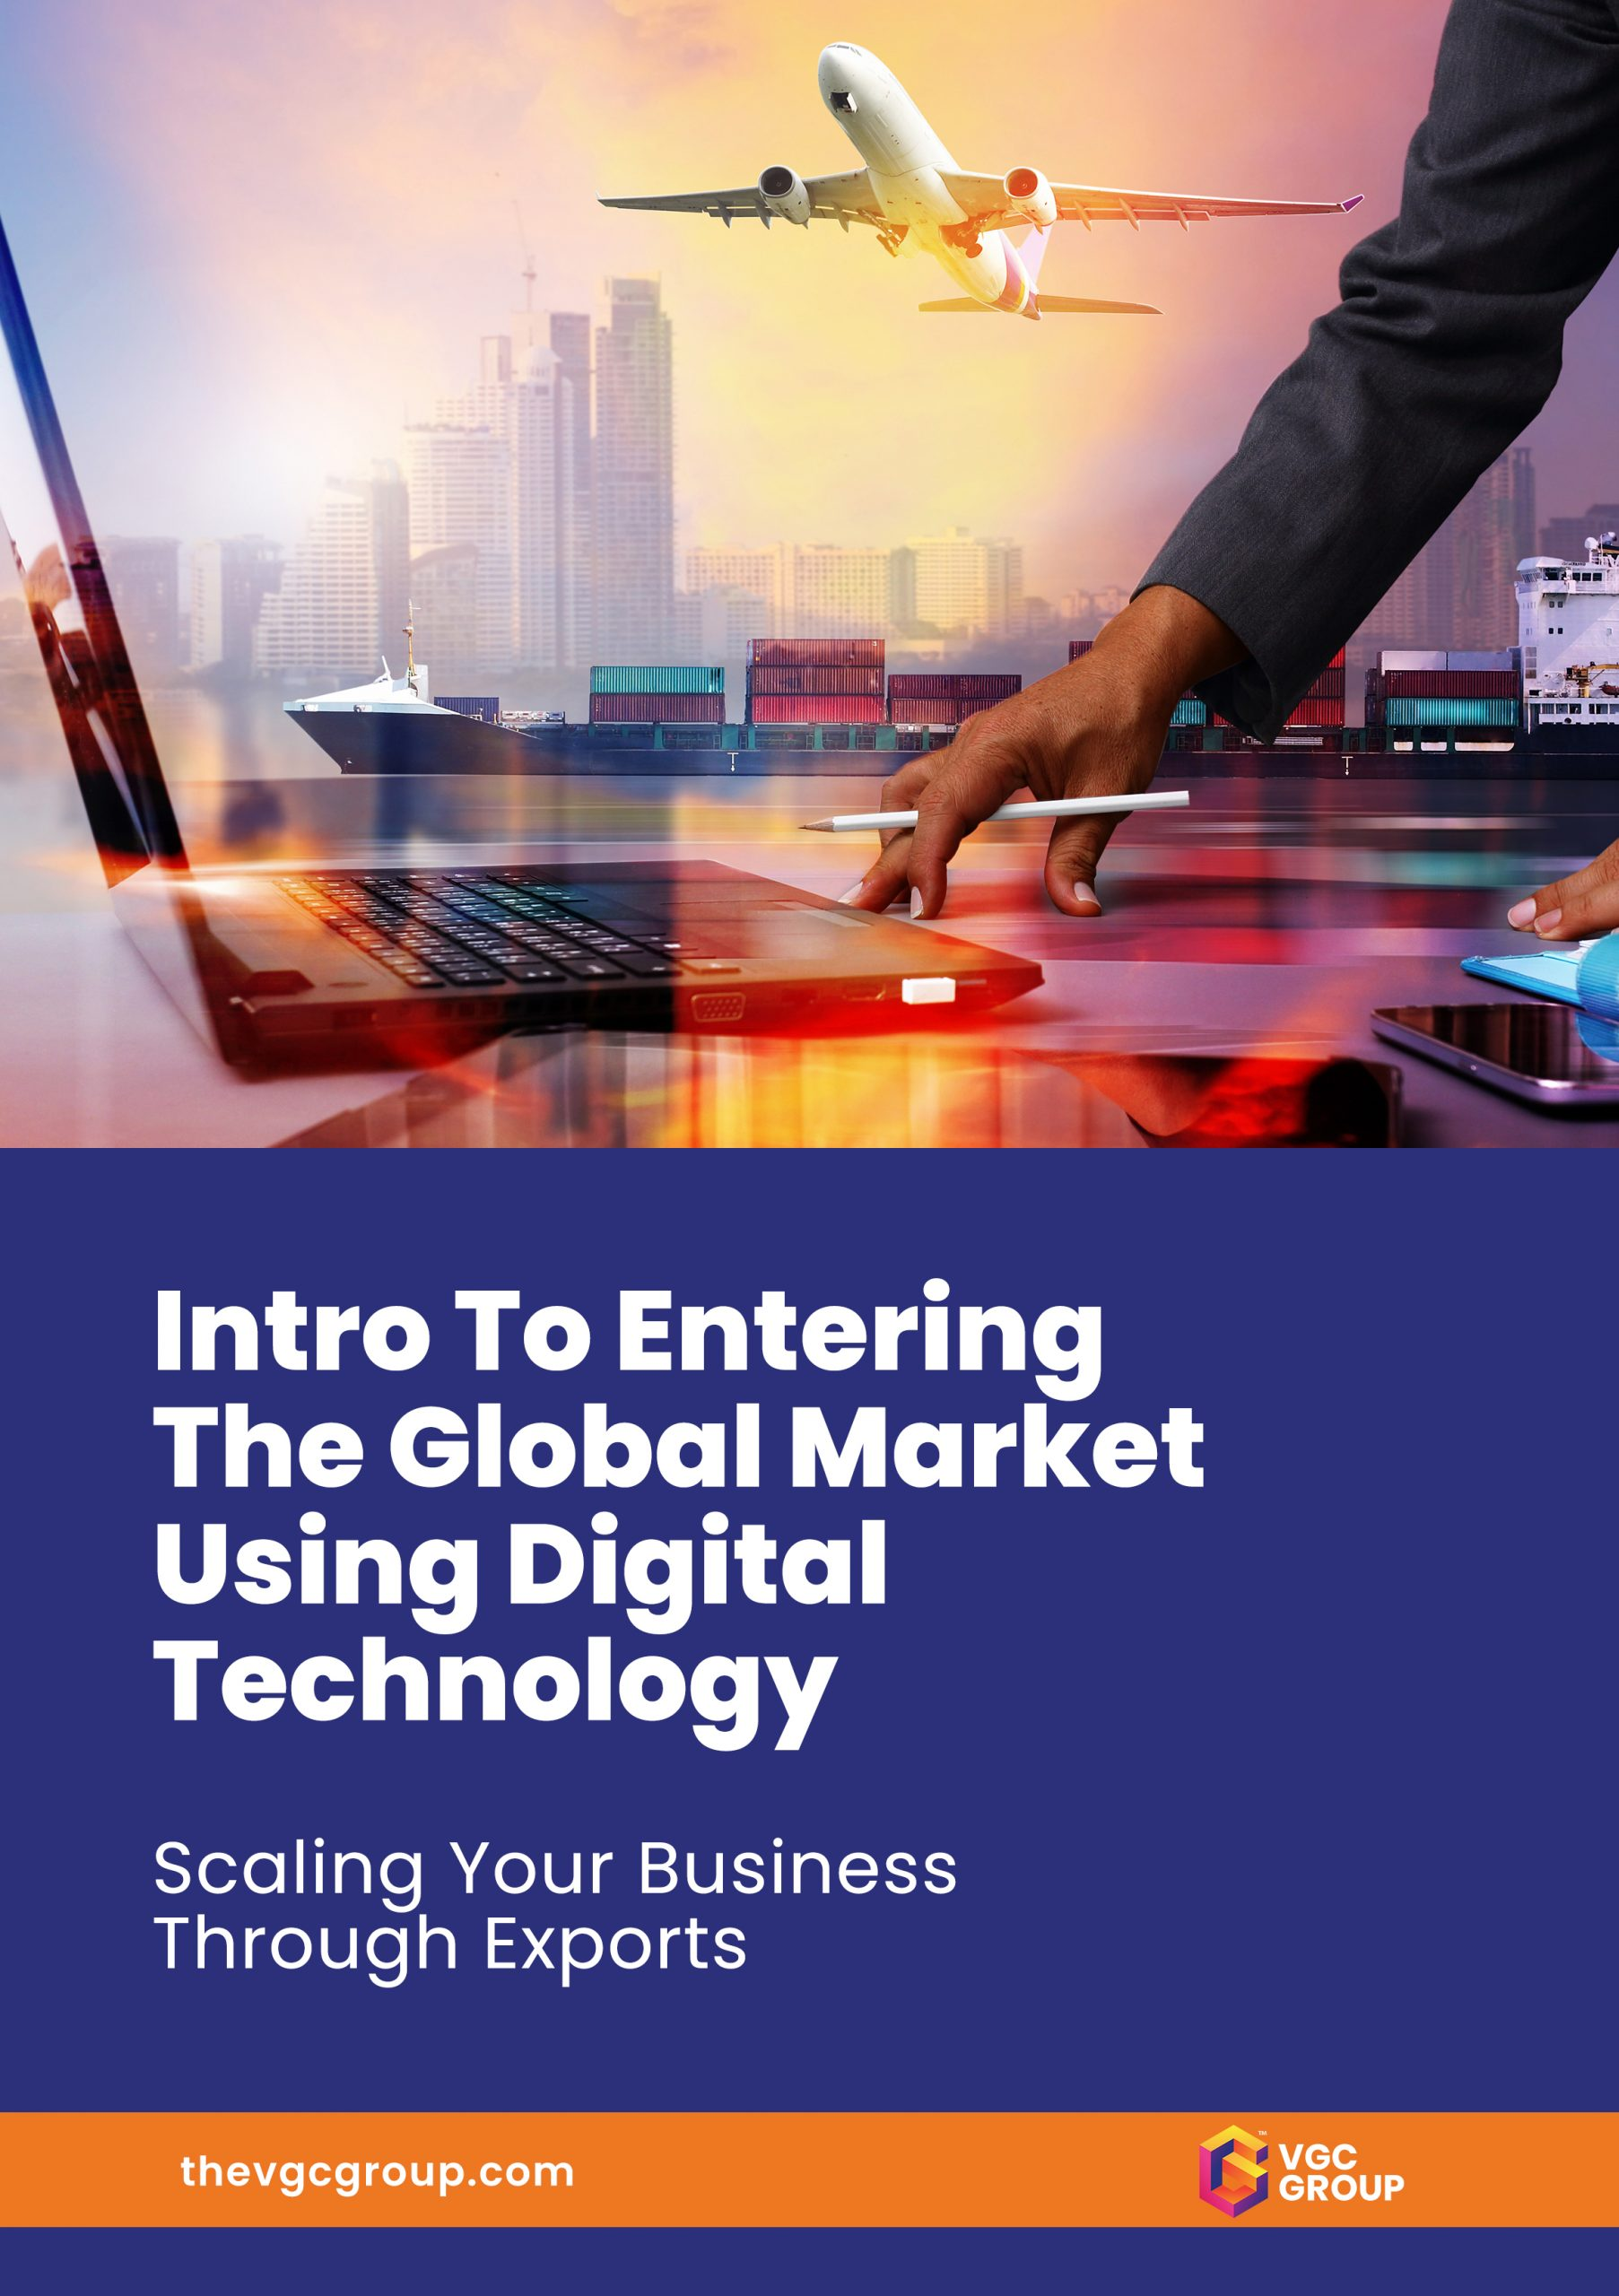 Intro to Entering the Global Market with Digital Technology